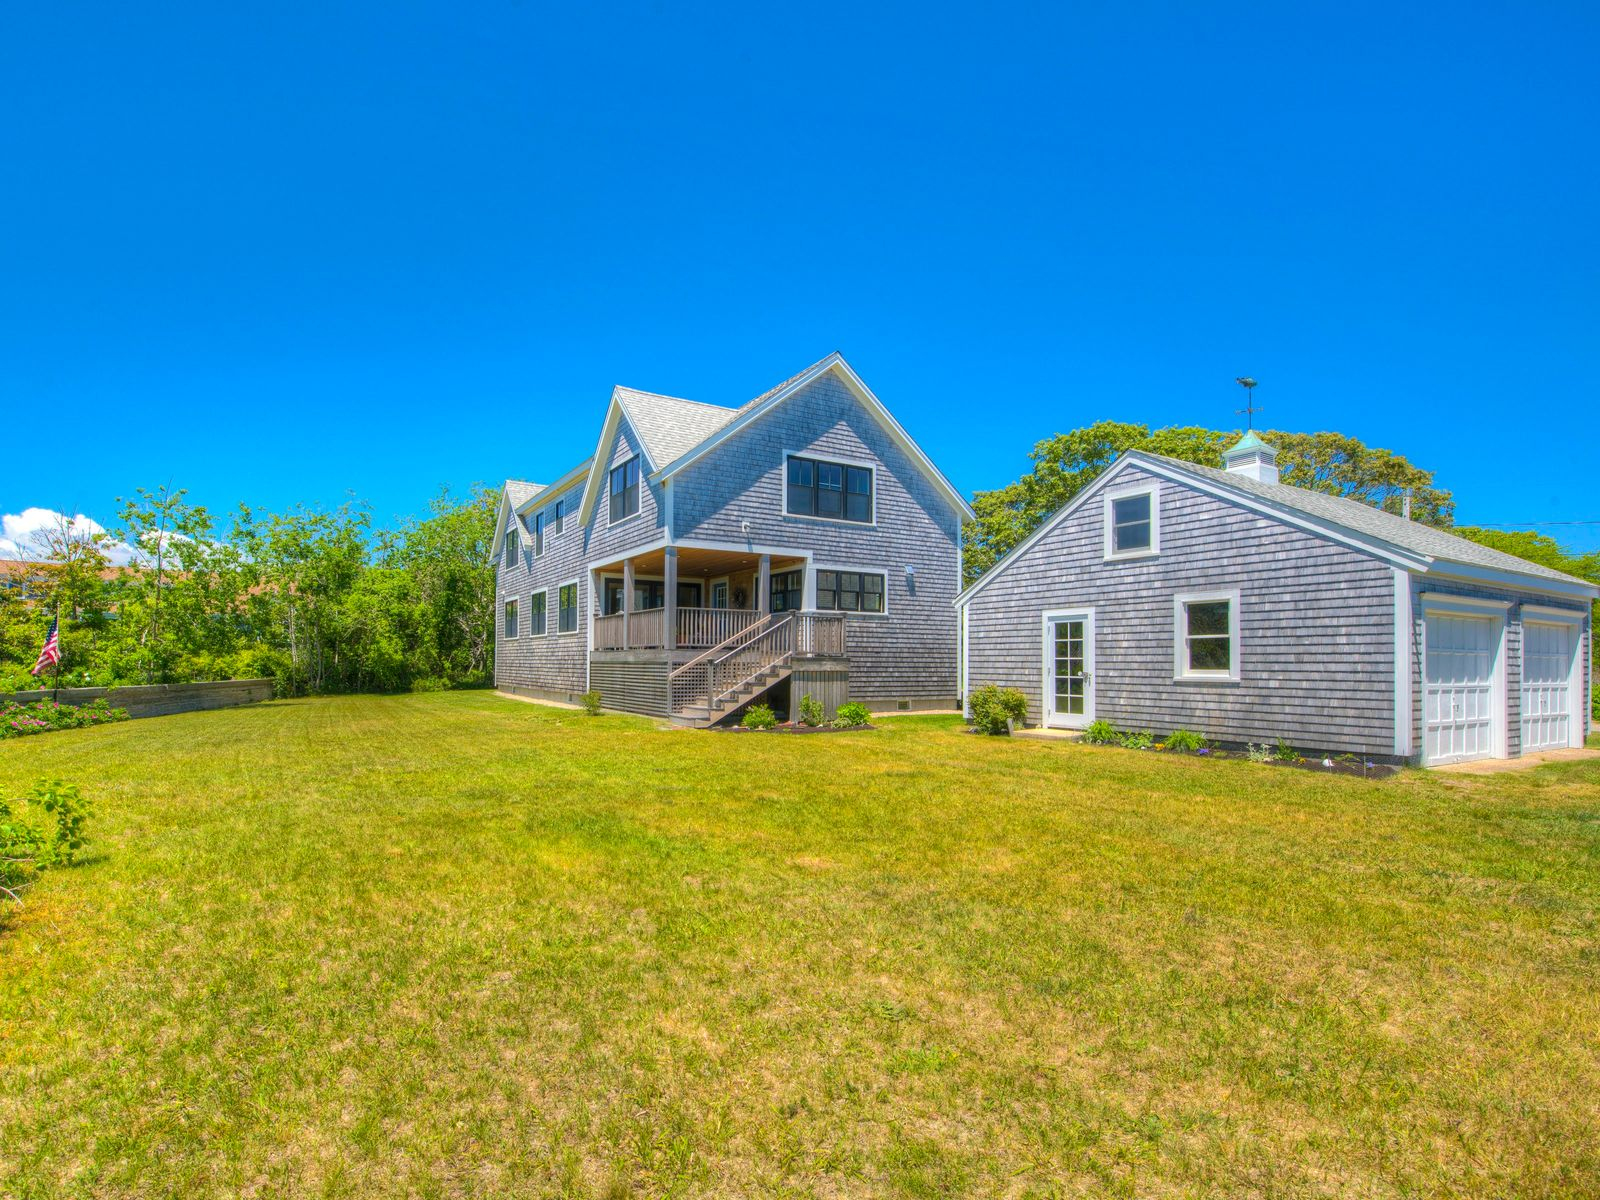 Privacy, Views, Waterfront, Centerville MA Single Family Home - Cape Cod Real Estate